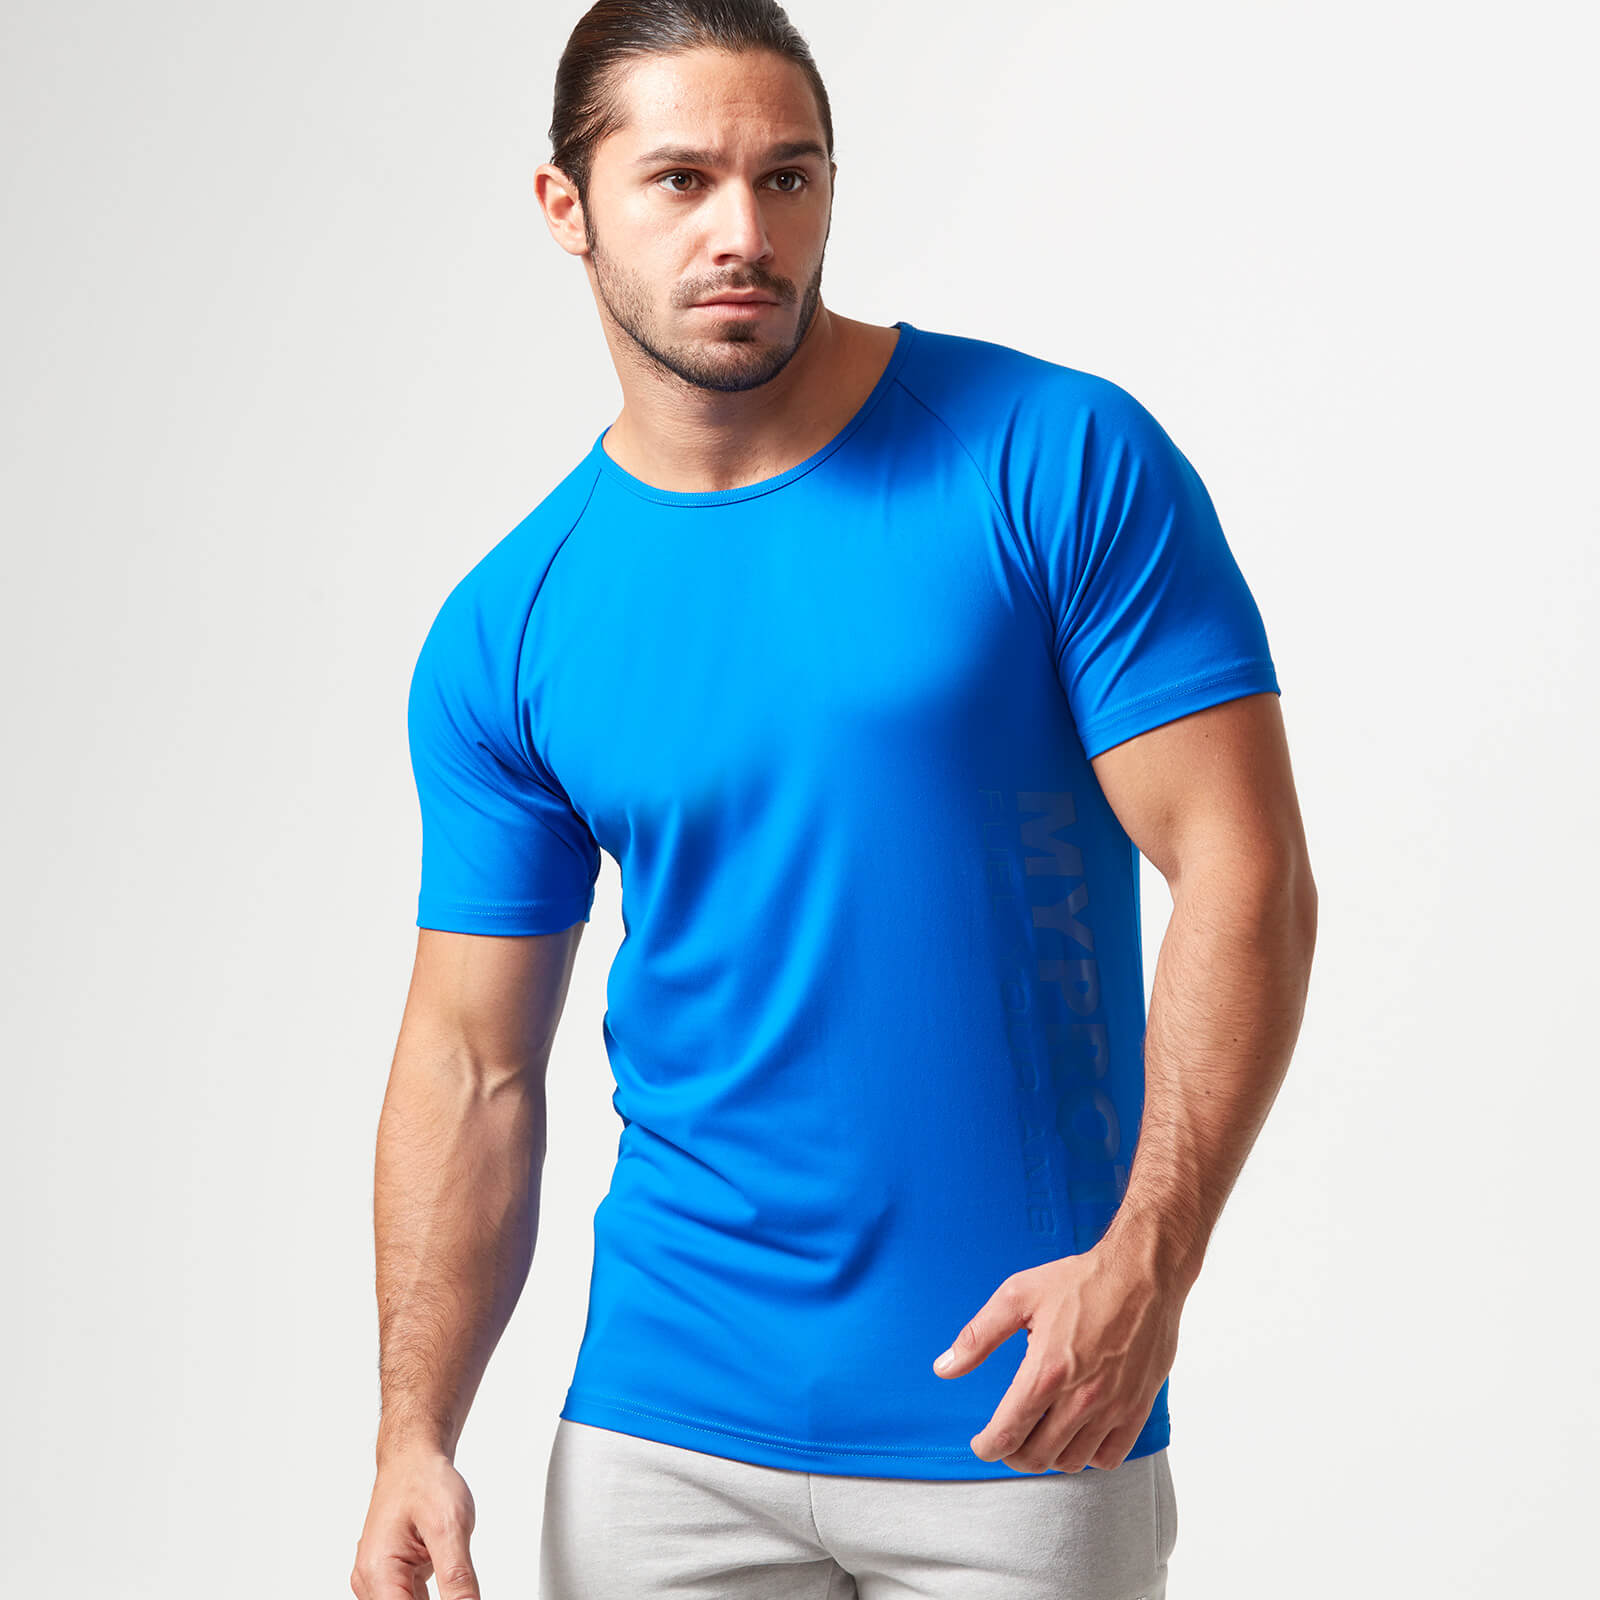 Myprotein Bold Tech T-Shirt - Blue - S